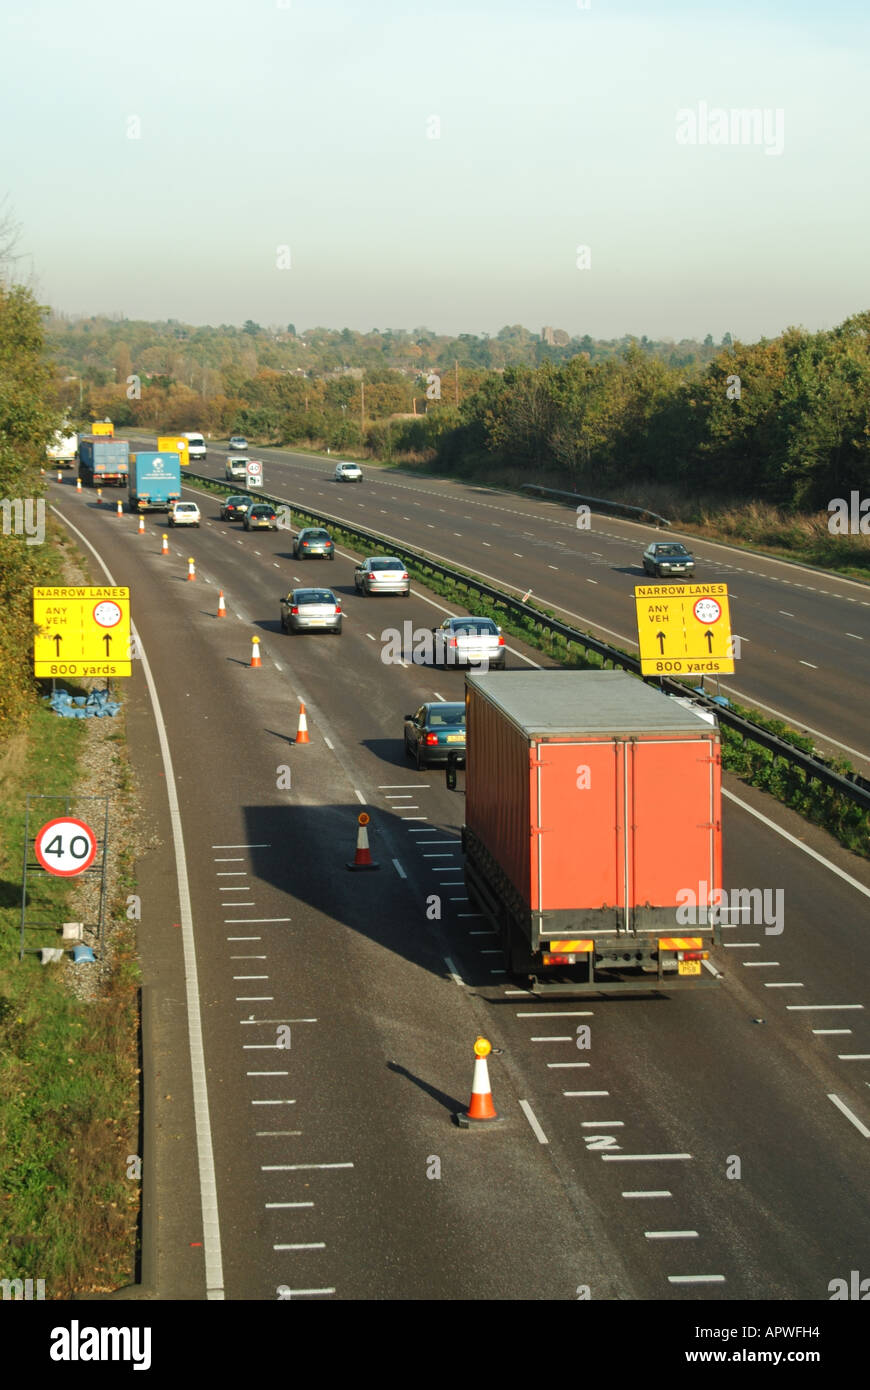 Ingatestone bypass road works approach warning signs and lane closure with speed camera road markings - Stock Image